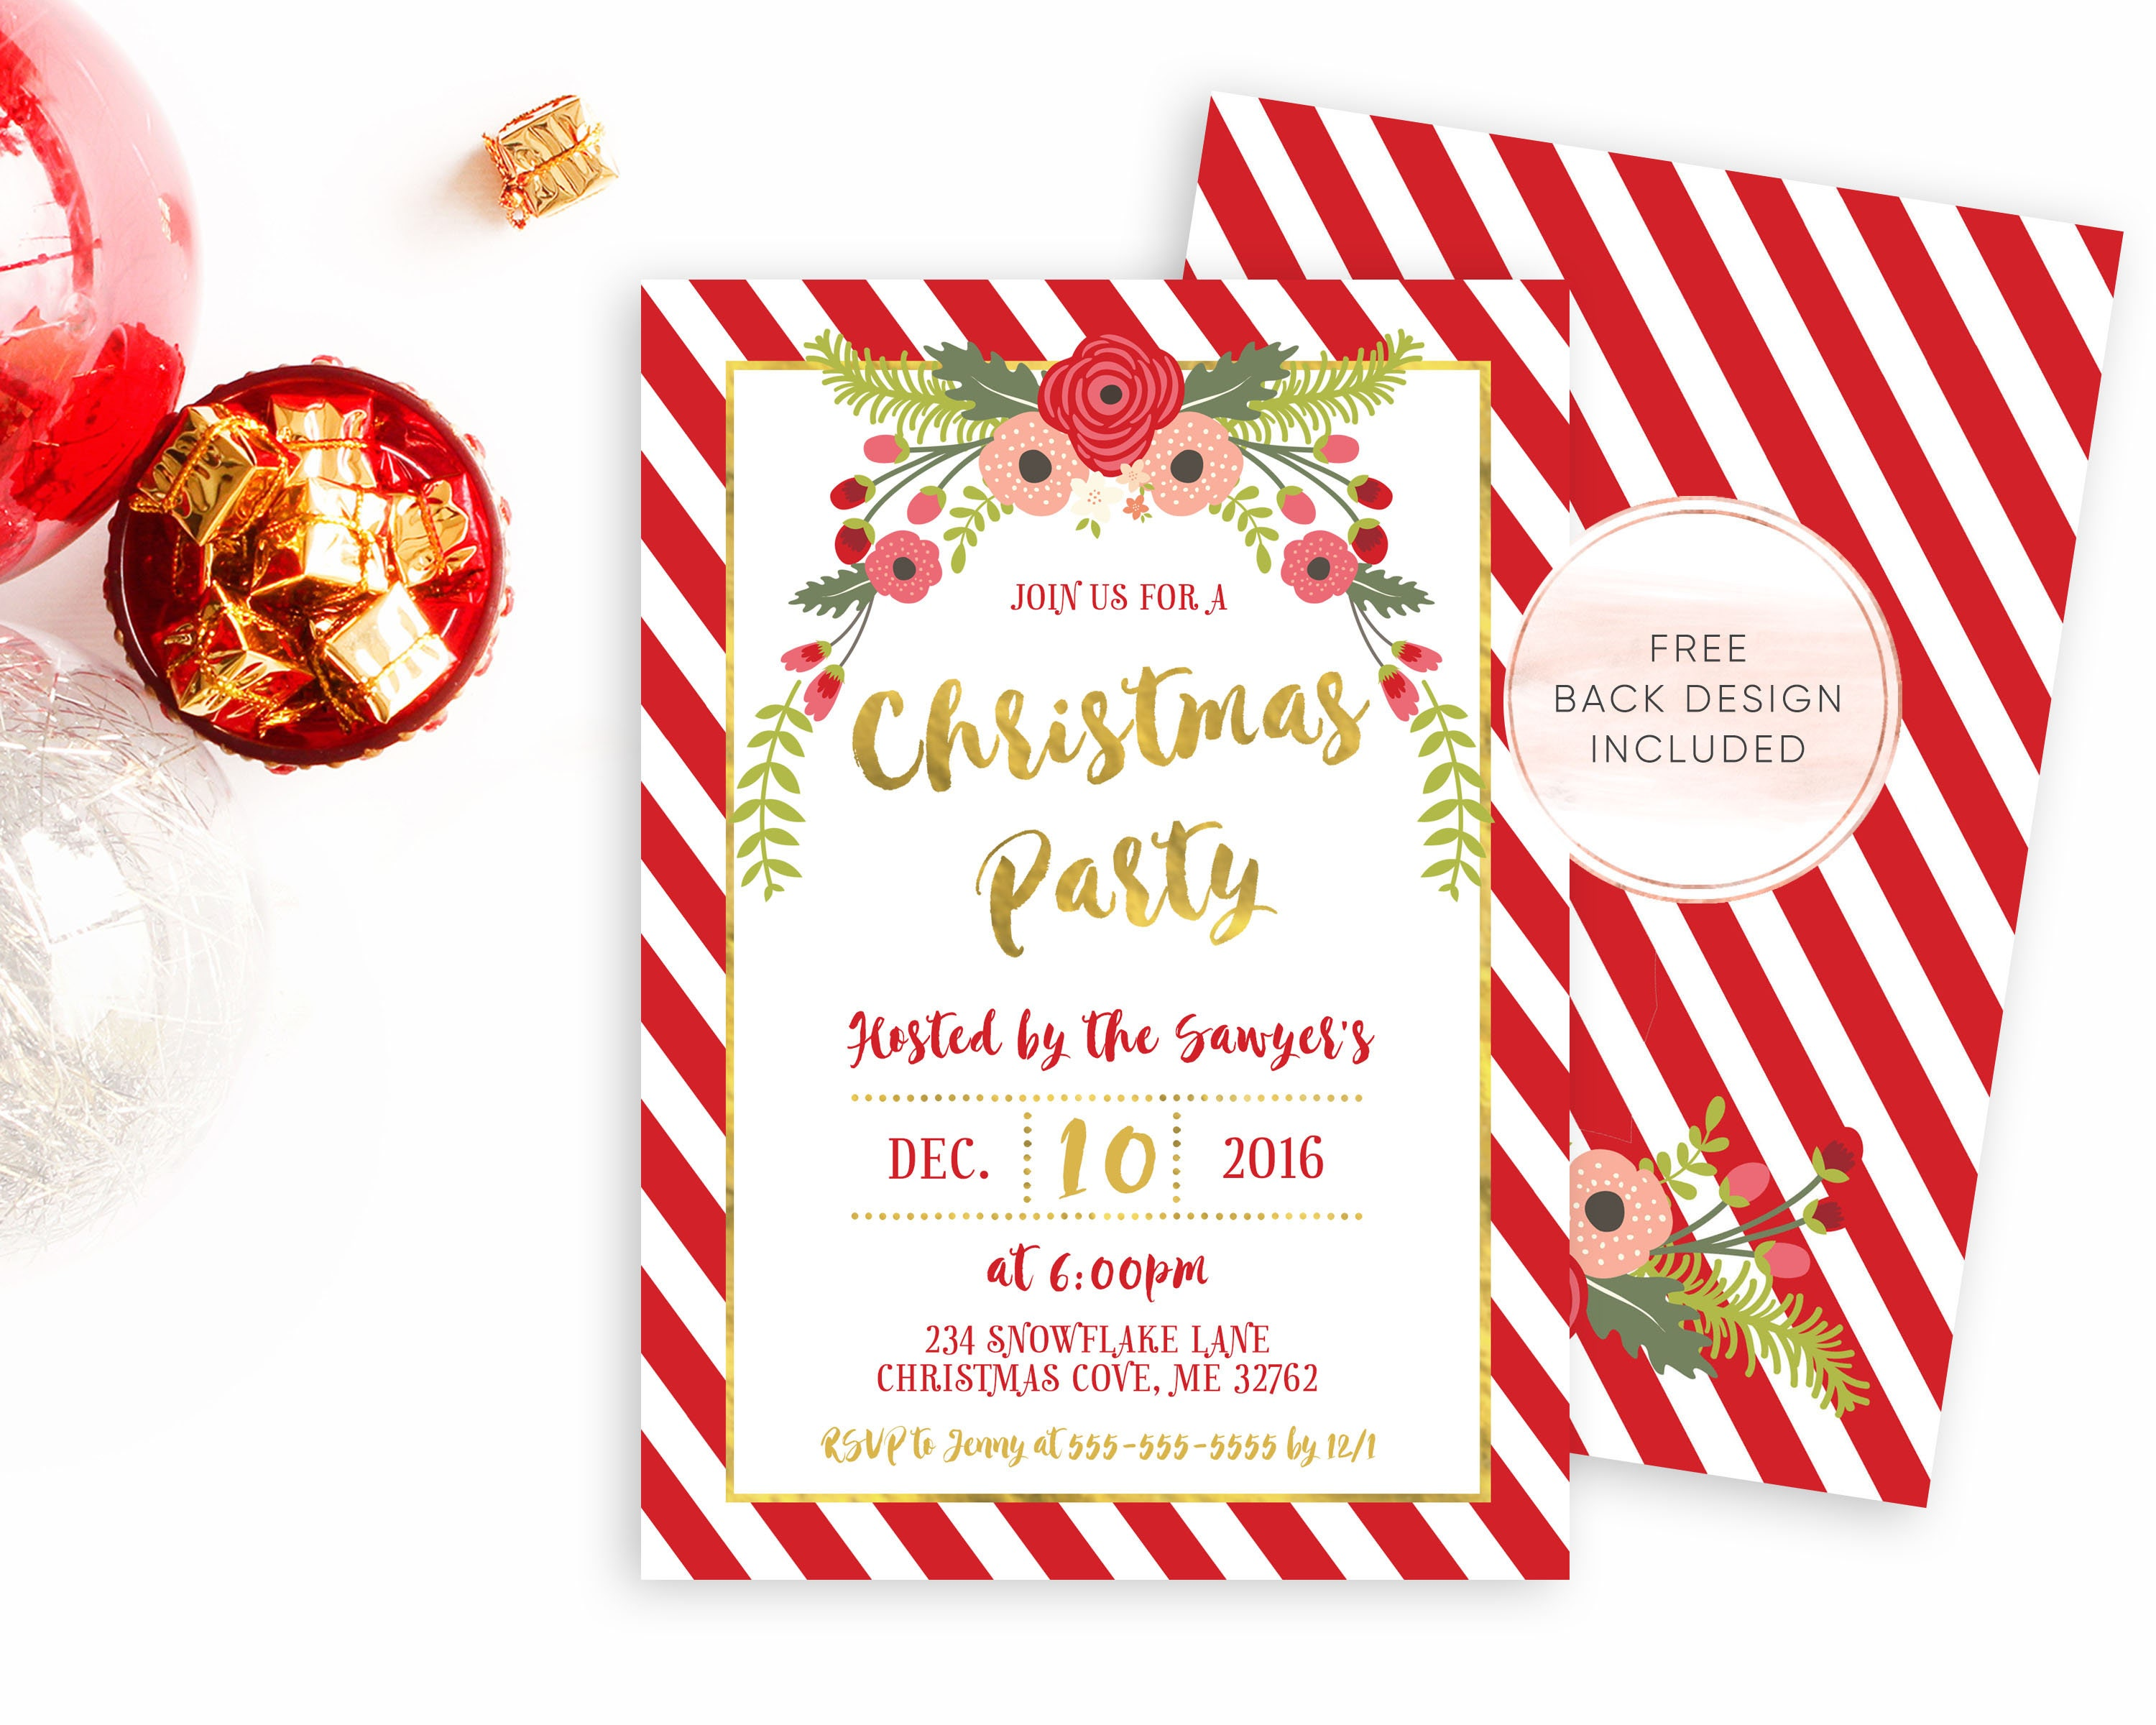 Invitation Letter Christmas Party Images - Party Invitations Ideas